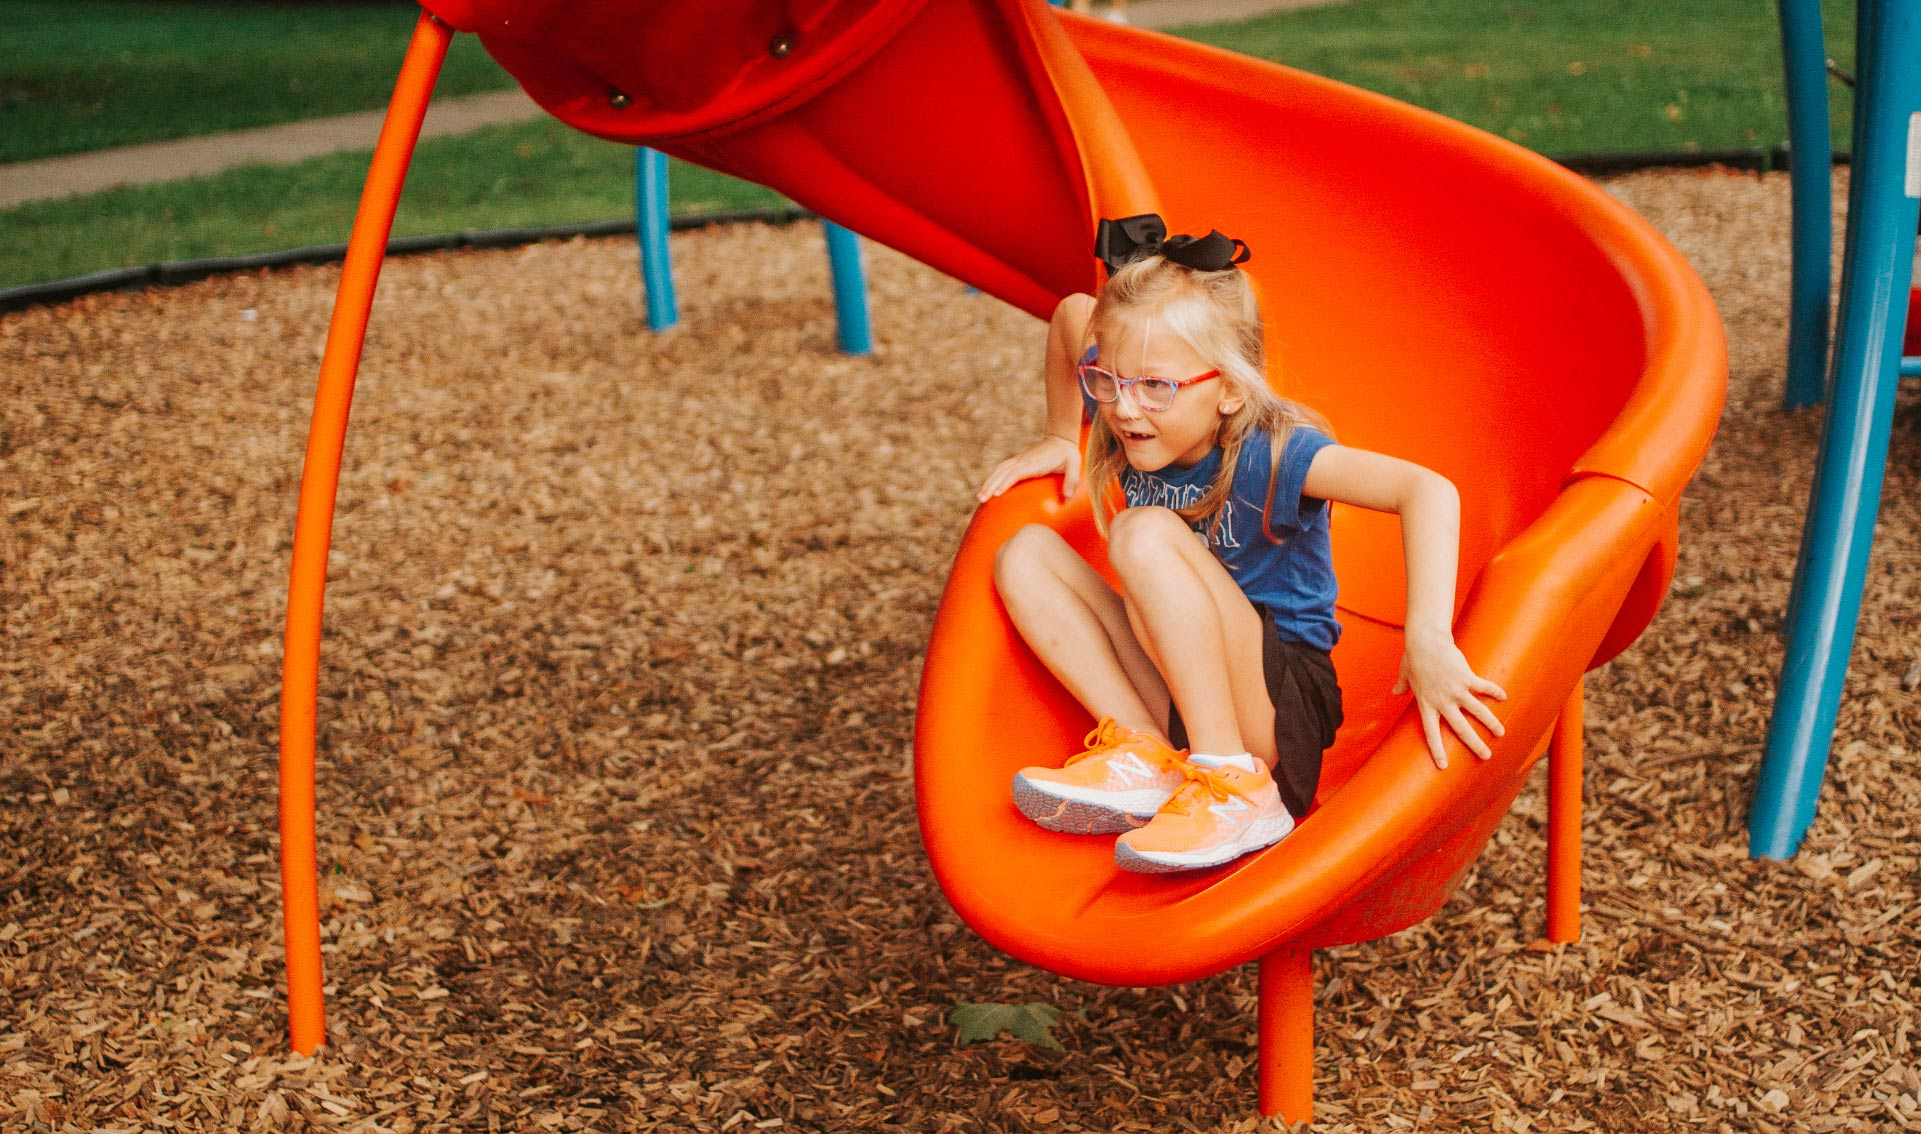 Olivia Buffano, six years old, comes down a slide. She has blonde hair with a black bow in it, and is wearing a blue Kentucky shirt, orange sneakers, a black skirt, and pink glasses.